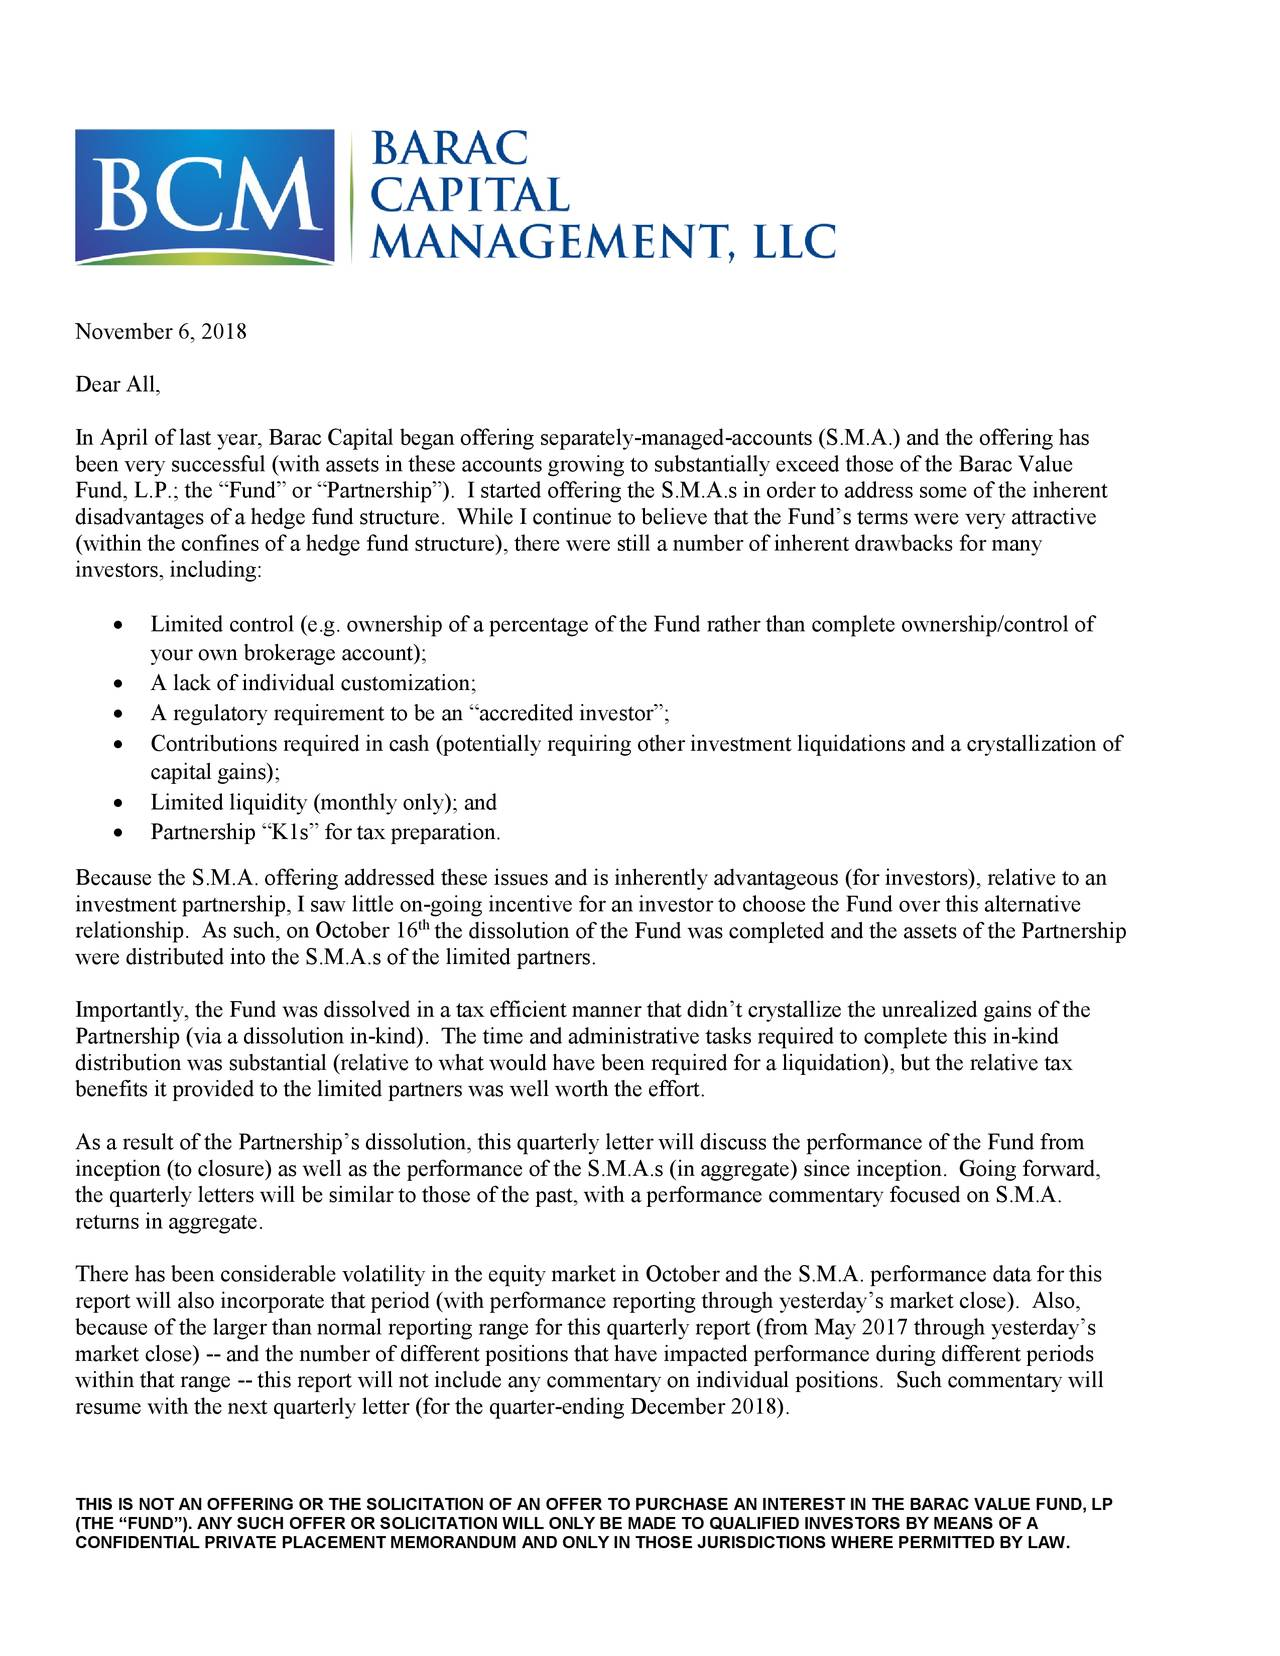 """Dear All, In April of last year, Barac Capital began offering separately-managed-accounts (S.M.A.) and the offering has been very successful (with assets in these accounts growing to substantially exceed those of the Barac Value Fund, L.P.; the """"Fund"""" or """"Partnership""""). I started offering the S.M.A.s in order to address some of the inherent disadvantages of a hedge fund structure. While I continue to believe that the Fund's terms were very attractive (within the confines of a hedge fund structure), therewere still a number of inherent drawbacks for many investors, including: • Limited control (e.g. ownership of a percentage of the Fund rather than complete ownership/control of your own brokerage account); • A lack of individual customization; • A regulatory requirement to be an """"accredited investor""""; • Contributions required in cash (potentially requiring other investment liquidations and a crystallization of capital gains); • Limited liquidity (monthly only); and • Partnership """"K1s"""" for tax preparation. Because the S.M.A. offering addressed these issues and is inherently advantageous (for investors), relative to an investment partnership, I saw little on-going incentive for an investor to choose the Fund over this alternative relationship. As such, on October 16 the dissolution of the Fund was completed and the assets of the Partnership were distributed into the S.M.A.s of the limited partners. Importantly, the Fund was dissolved in a tax efficient manner that didn't crystallize the unrealized gains of the Partnership (via a dissolution in-kind). The time and administrative tasks required to complete this in-kind distribution was substantial (relative to what would have been required for a liquidation), but the relative tax benefits it provided to the limited partners was well worth the effort. As a result of the Partnership's dissolution, this quarterly letter will discuss the performance of the Fund from inception (to closure) as well as the performance of the S."""